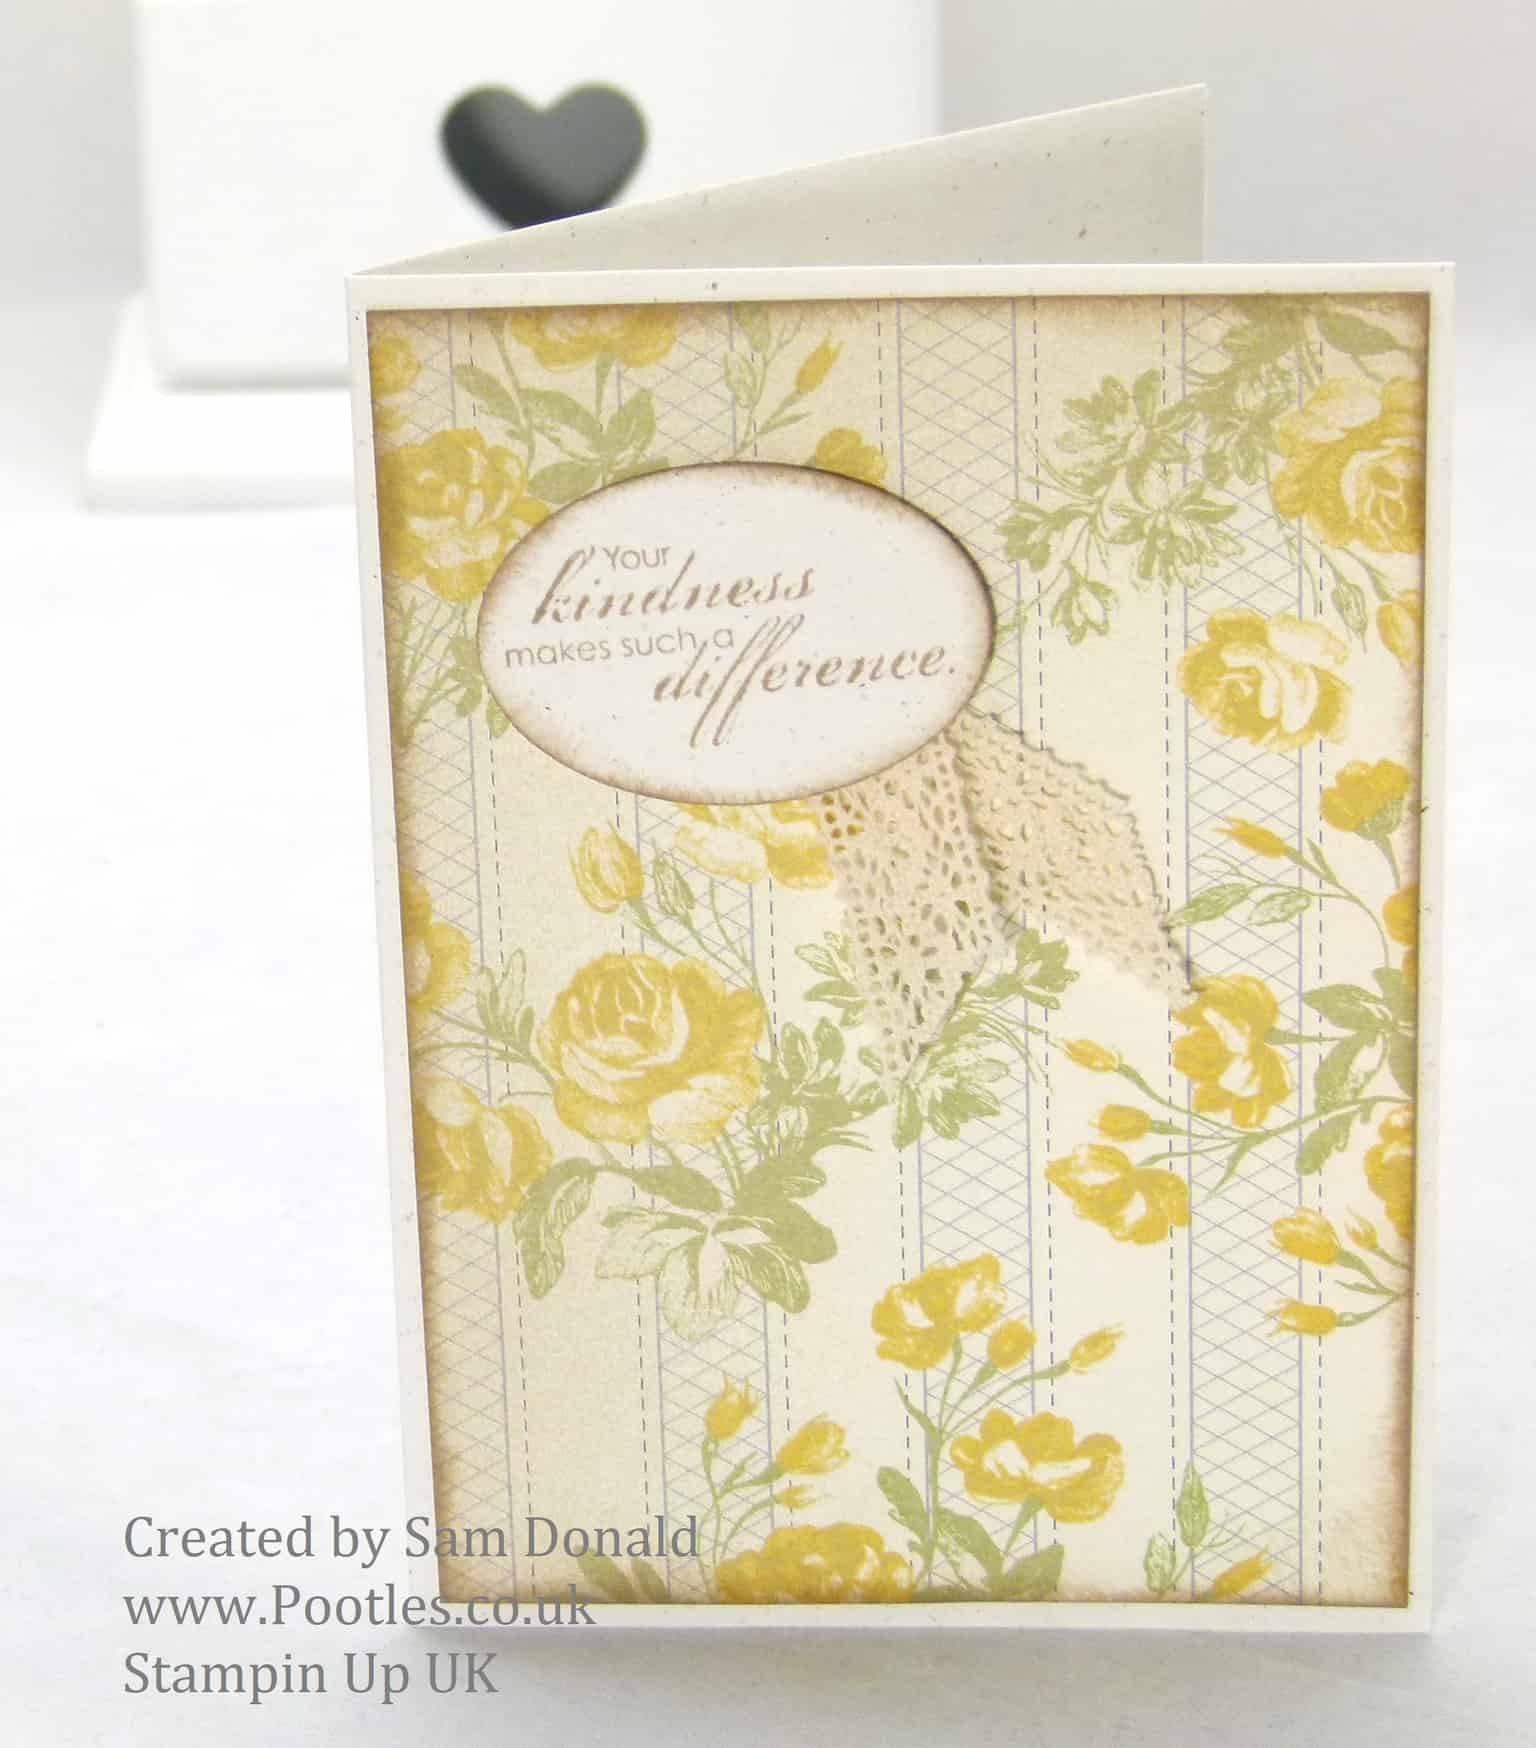 Pootles Stampin Up UK Afternoon Picnic Gentle Card